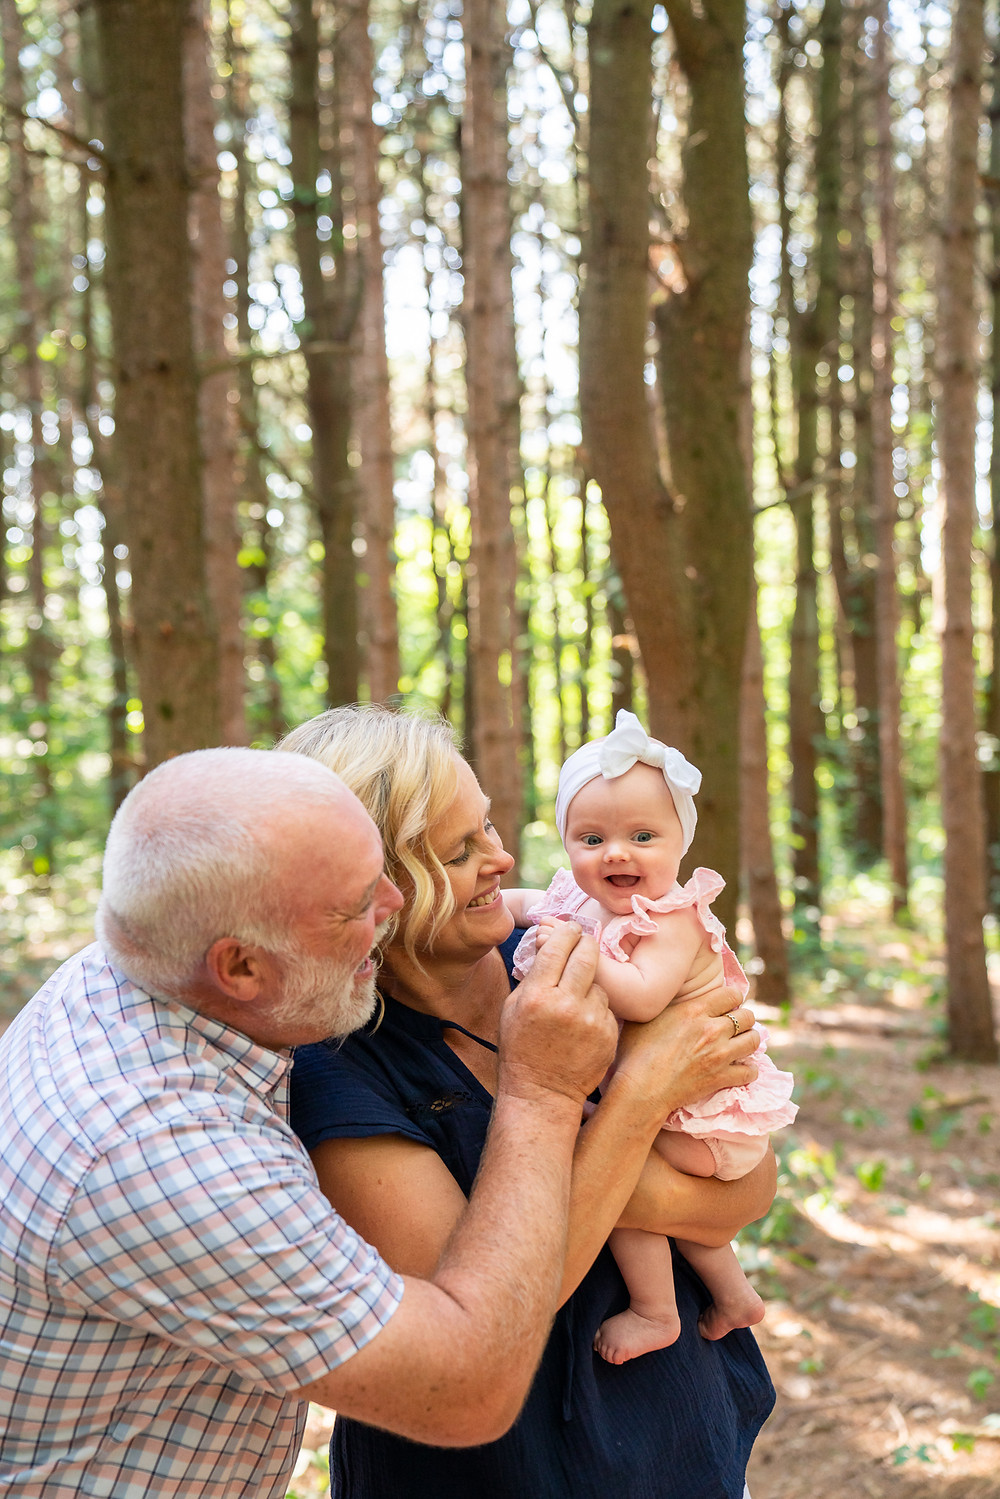 A grandma and grandpa holding a smiling baby outdoors